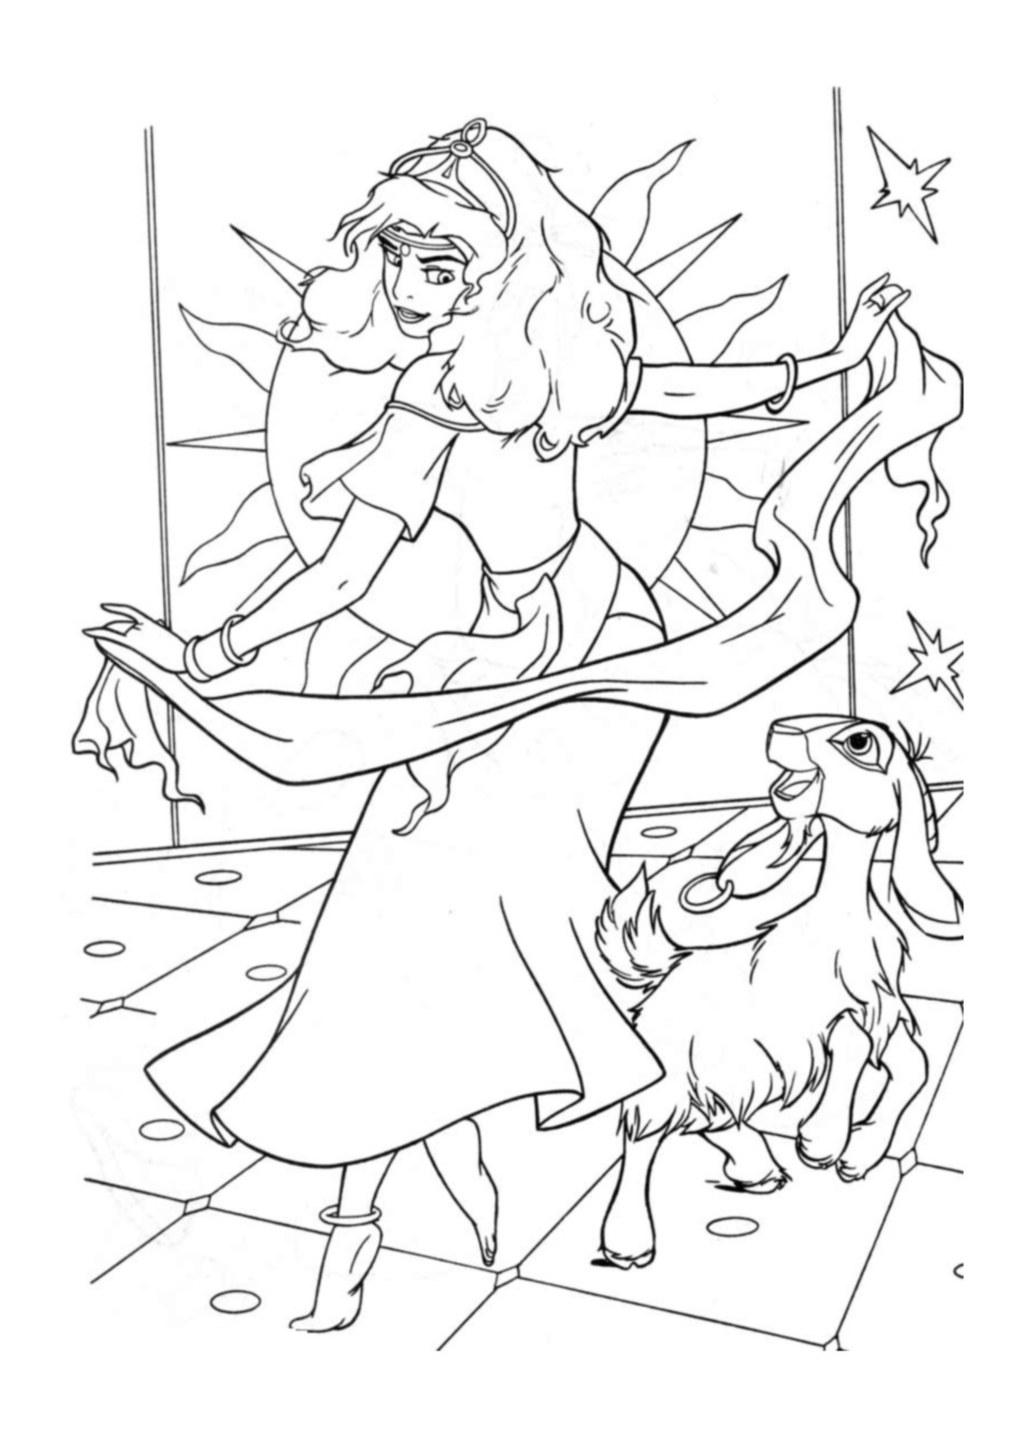 the hunchback of notre dame coloring pages the hunchback of the notre dame coloring pages pages coloring notre hunchback of dame the